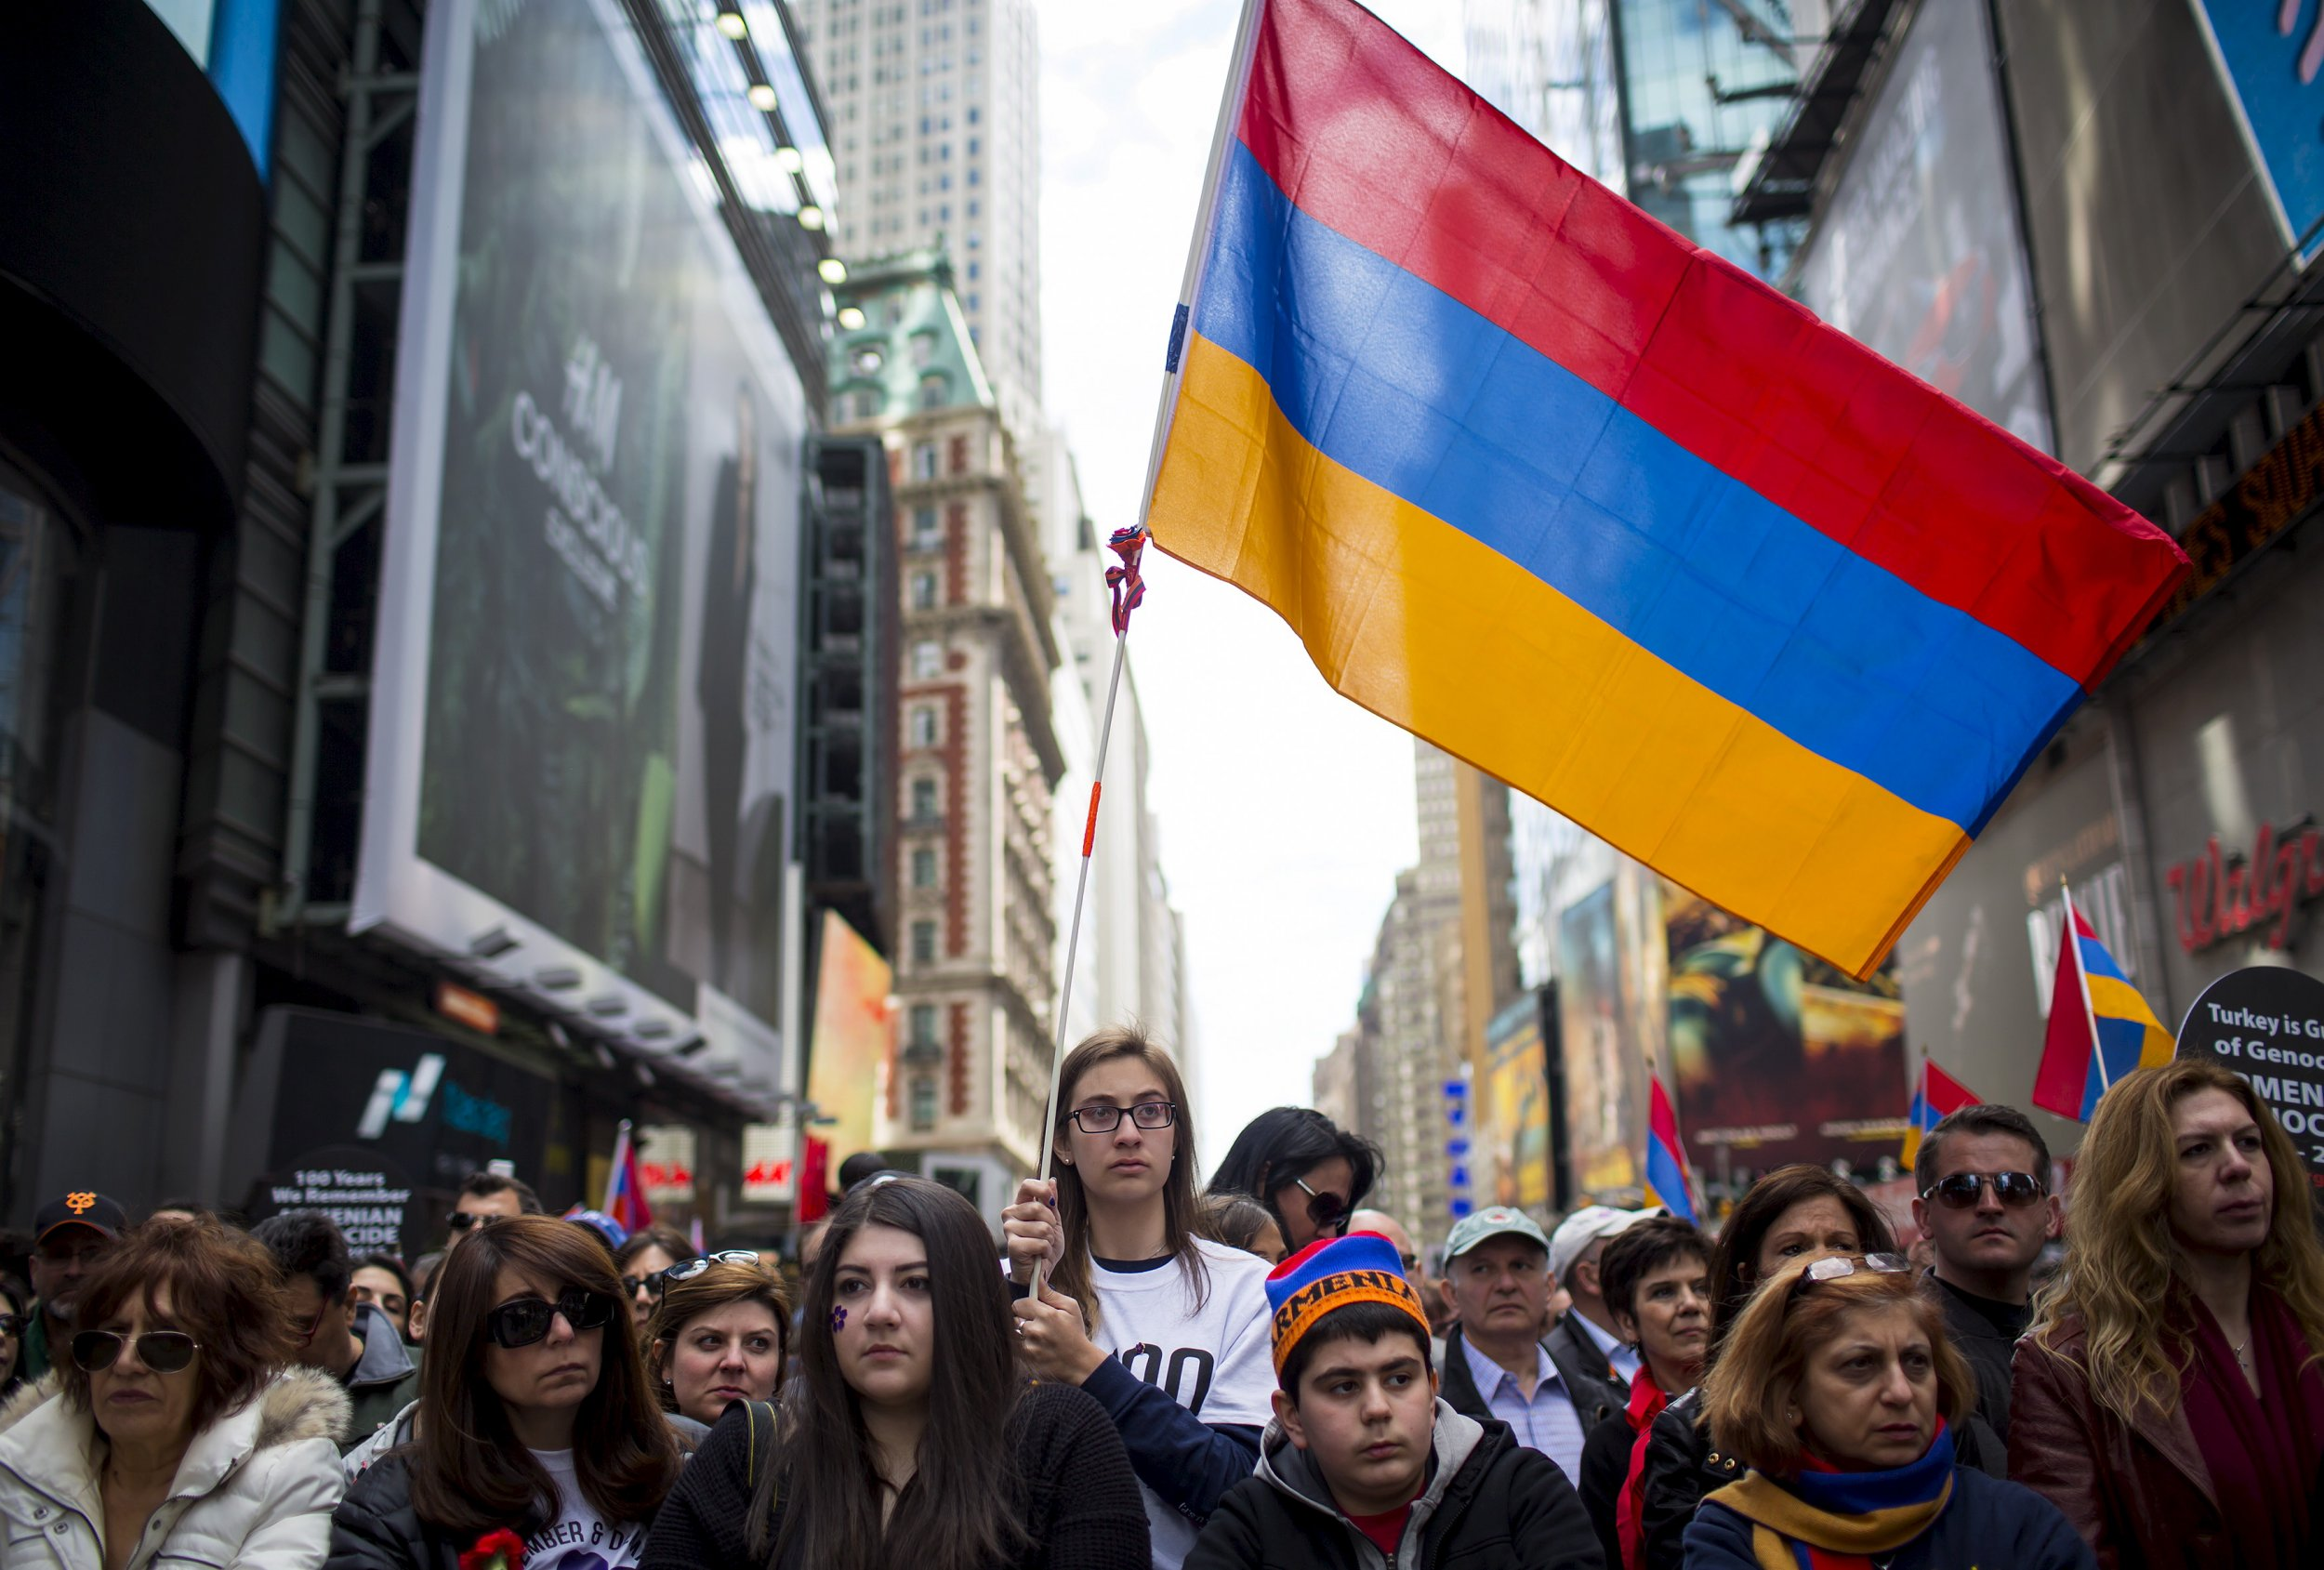 4-21-16 Armenian genocide commemoration